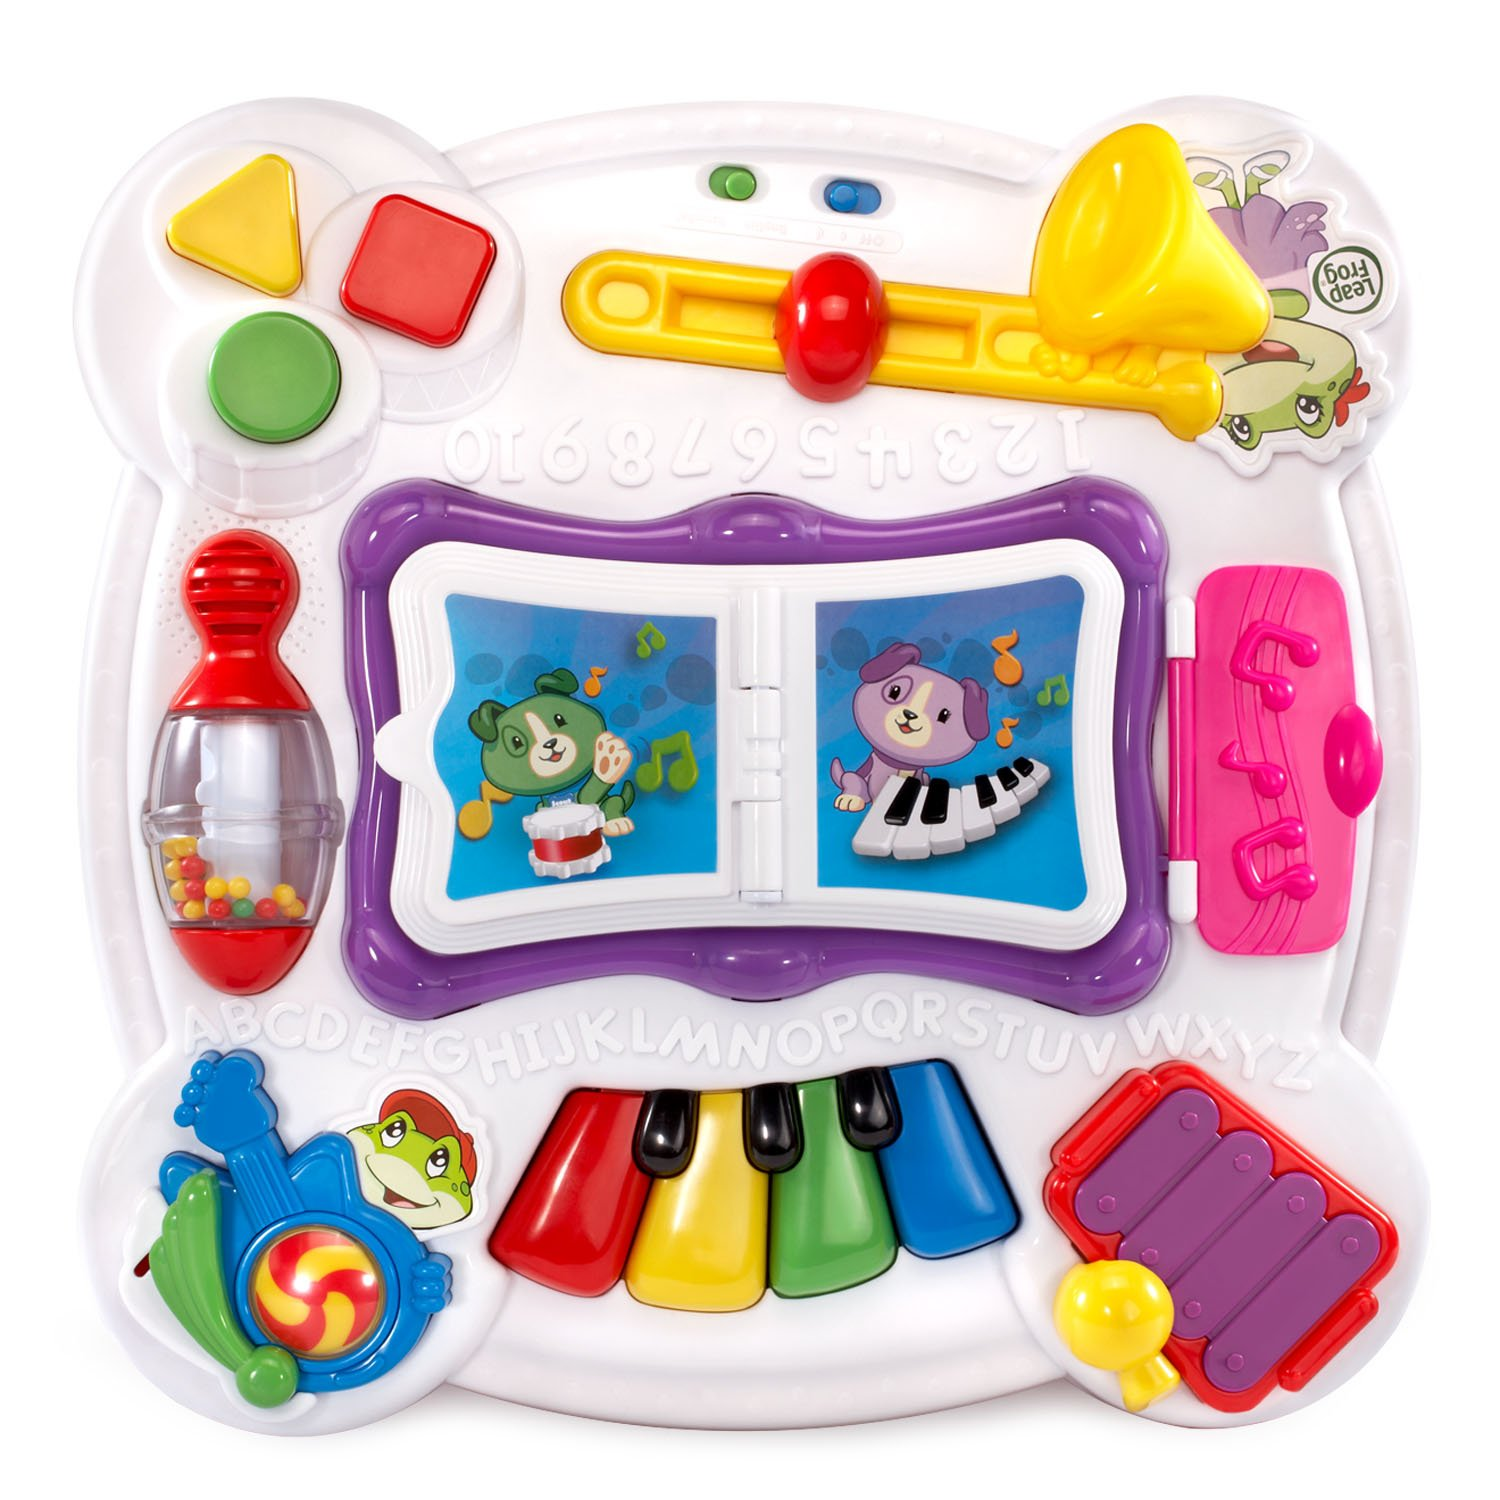 LeapFrog Learn and Groove Musical Table Activity Center Amazon Exclusive, Pink by LeapFrog (Image #2)